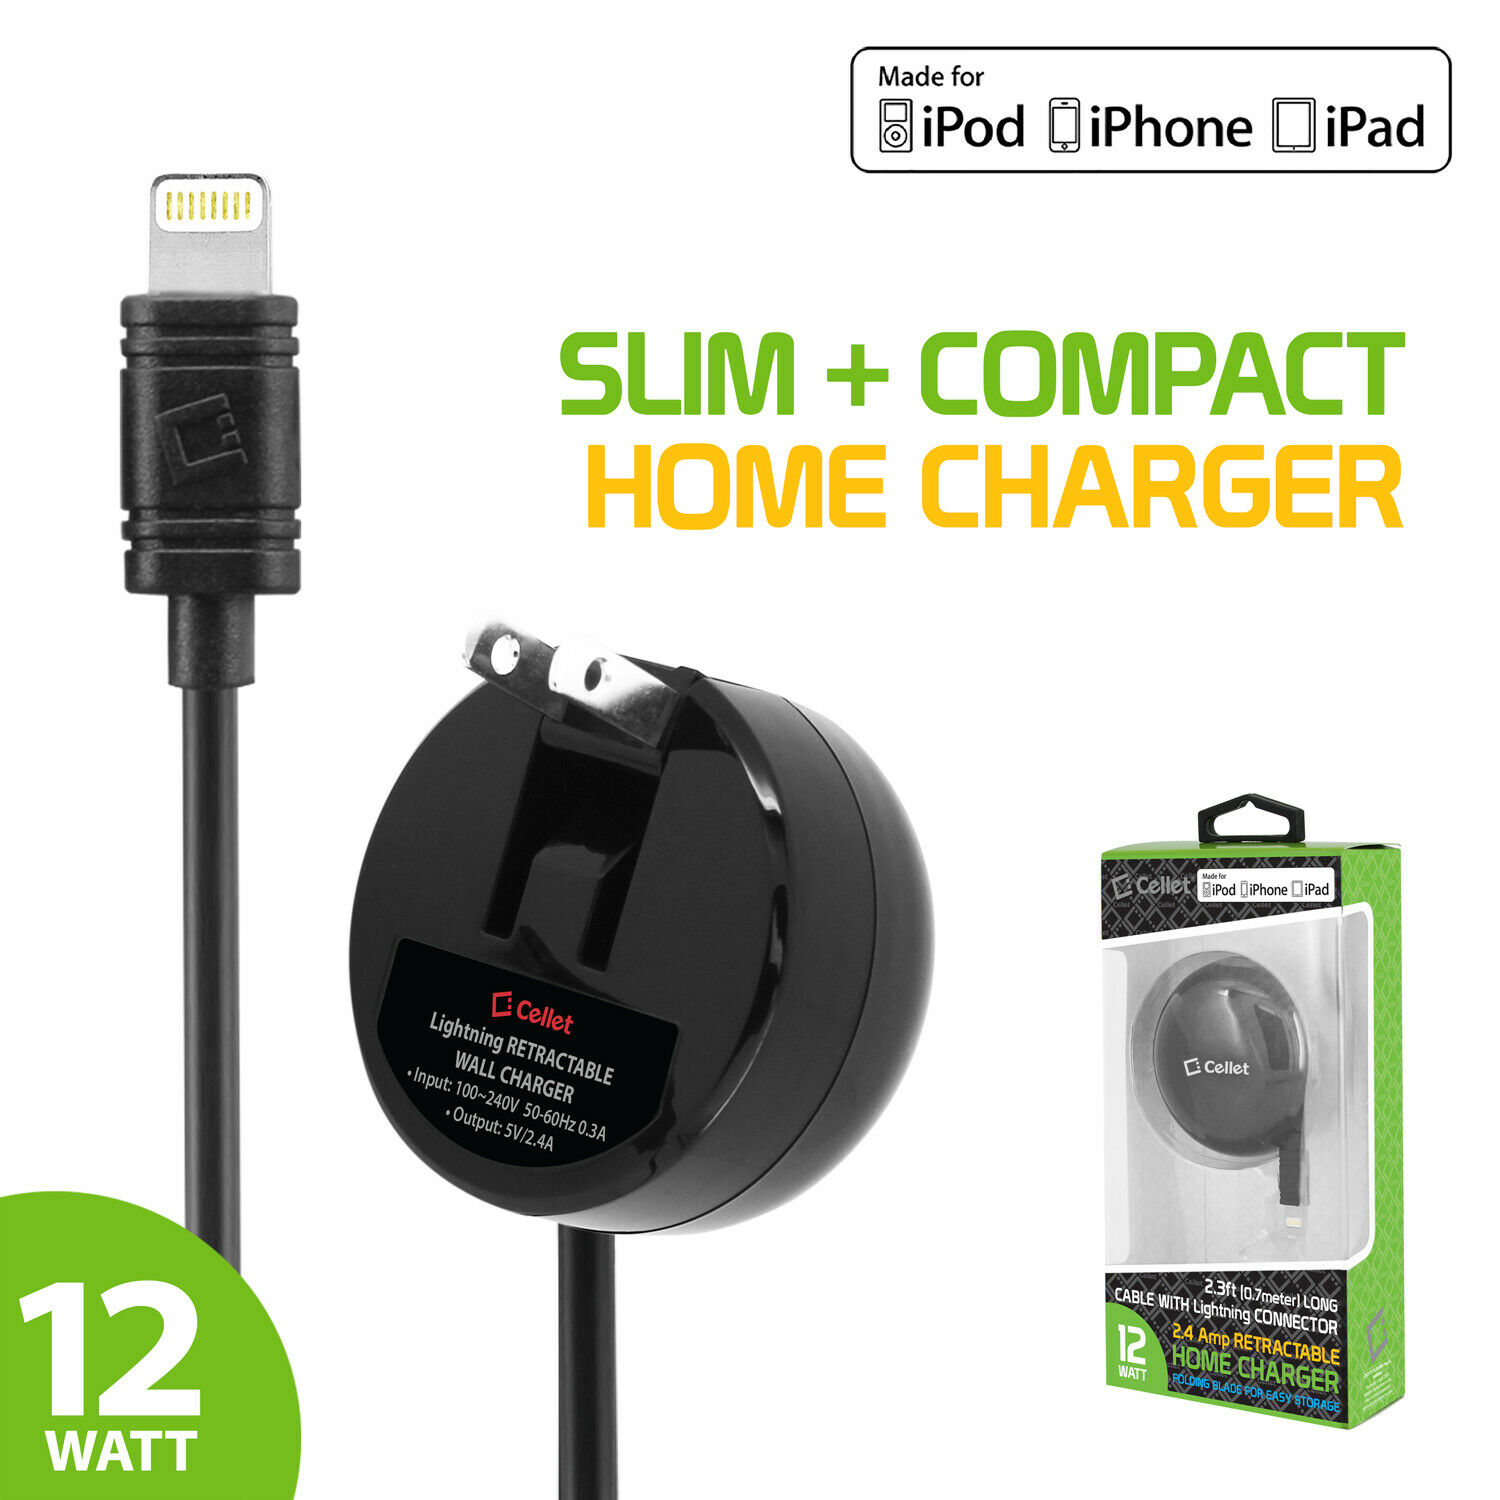 Cellet 2.4A Apple Certified Retractable Home Charger for App